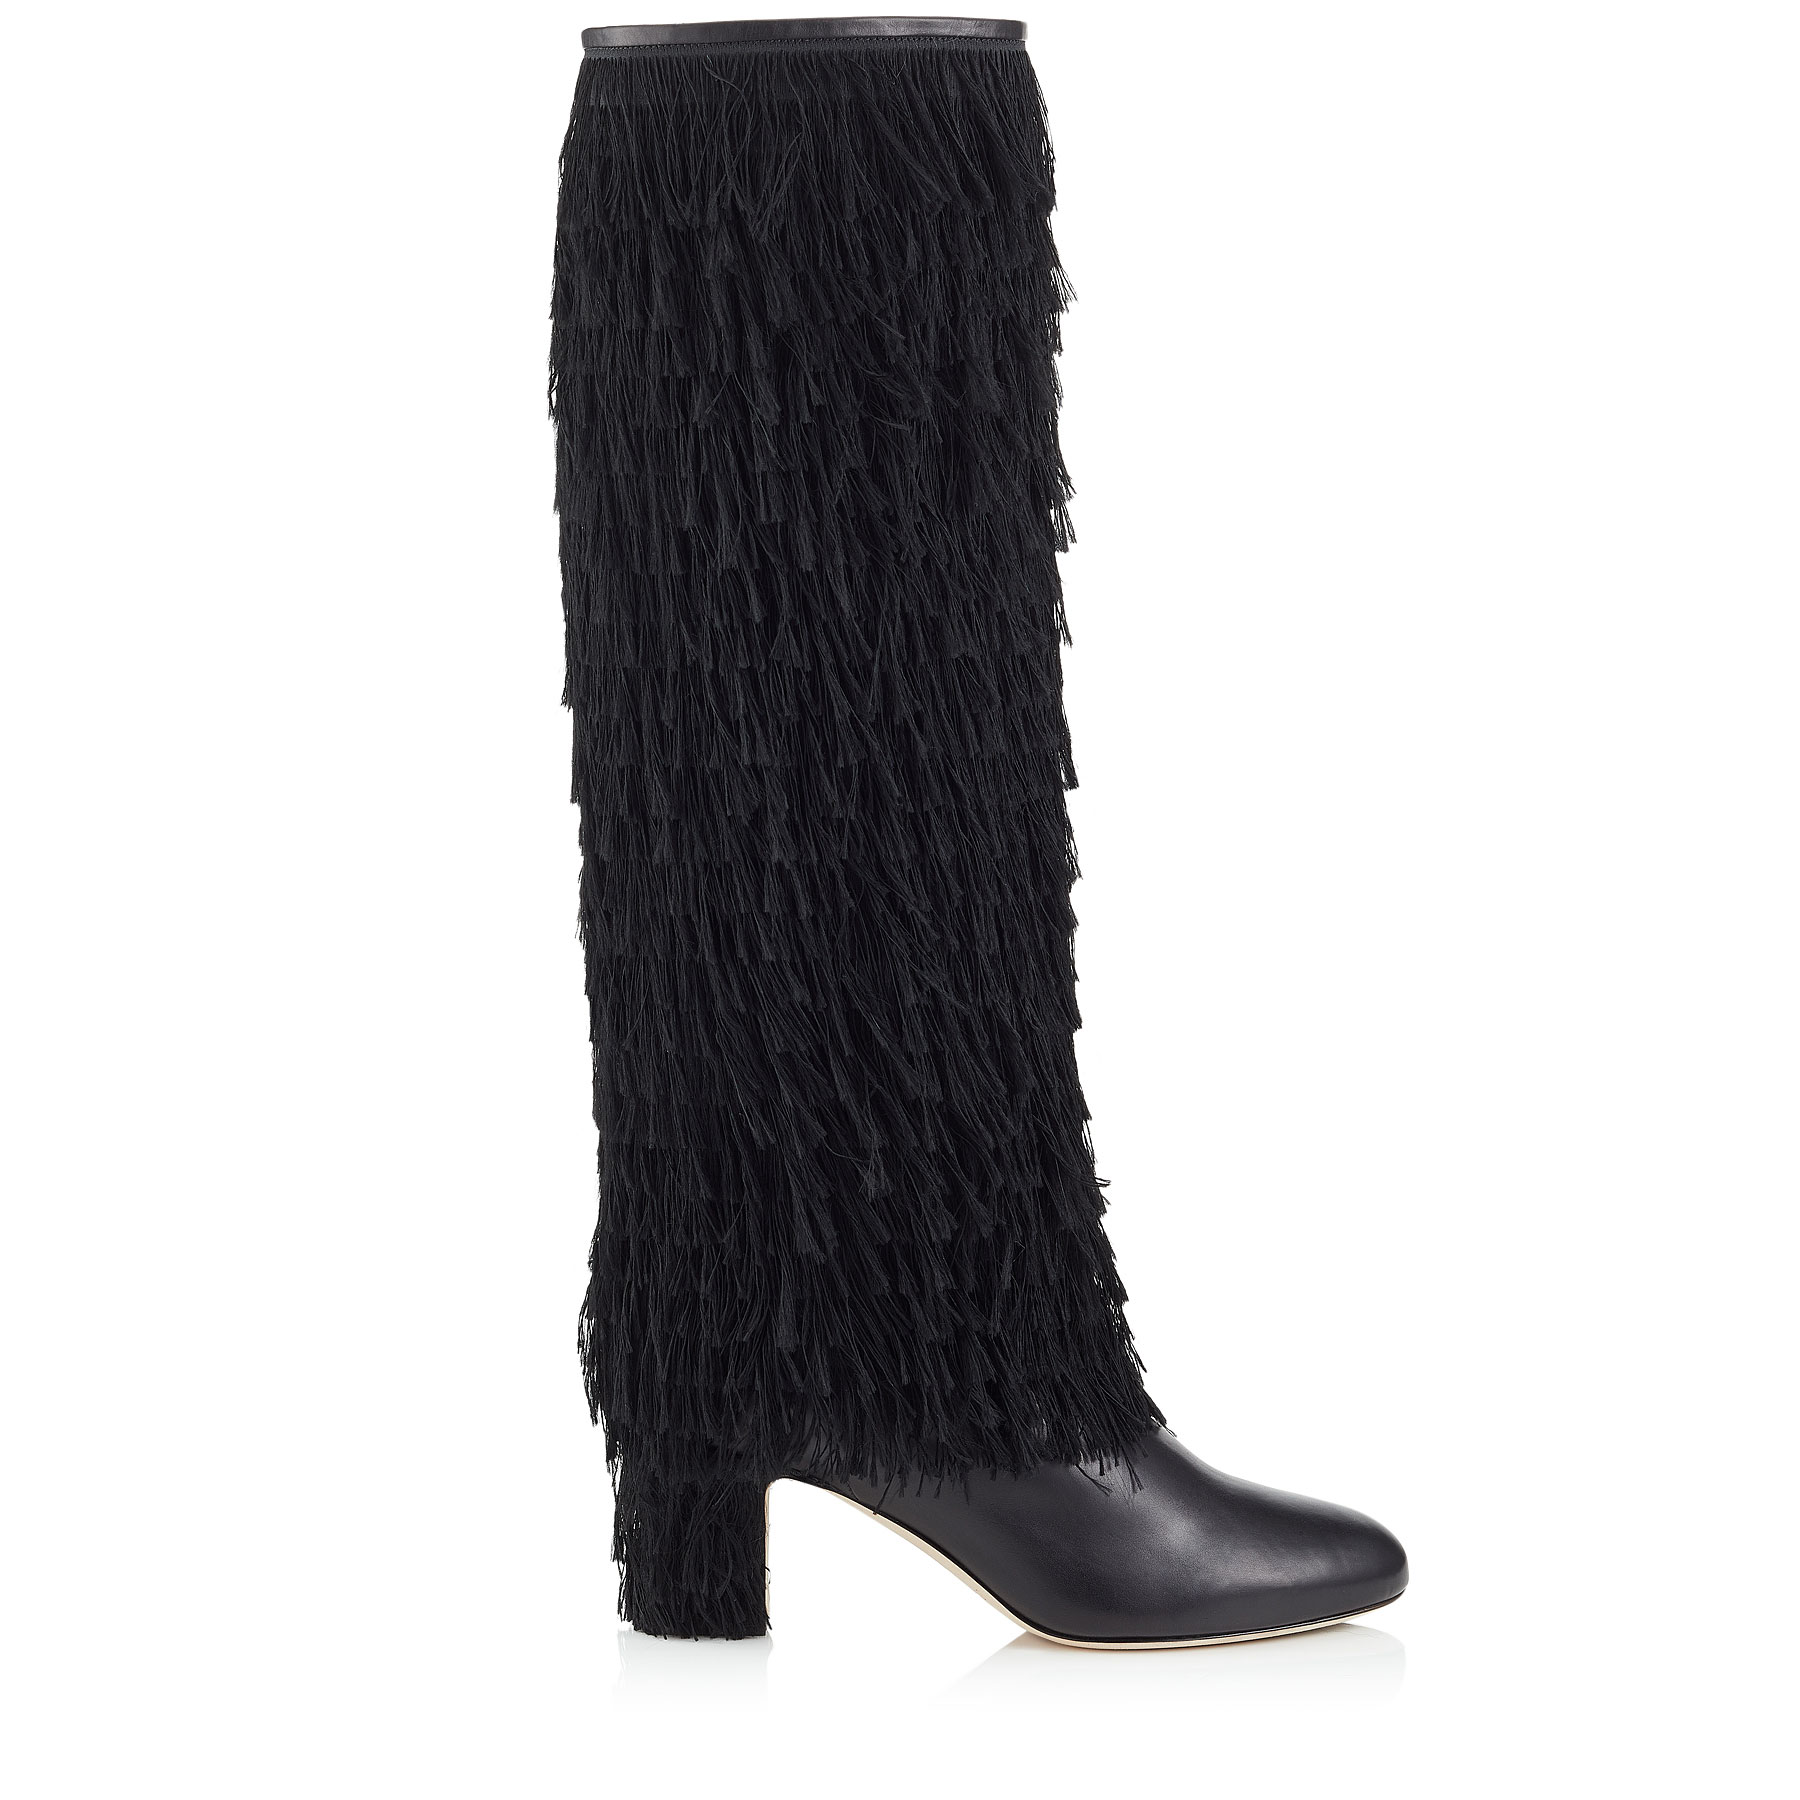 MAGALIE 65 Black Calf Leather Knee High Booties with Fringe Detailing by Jimmy Choo